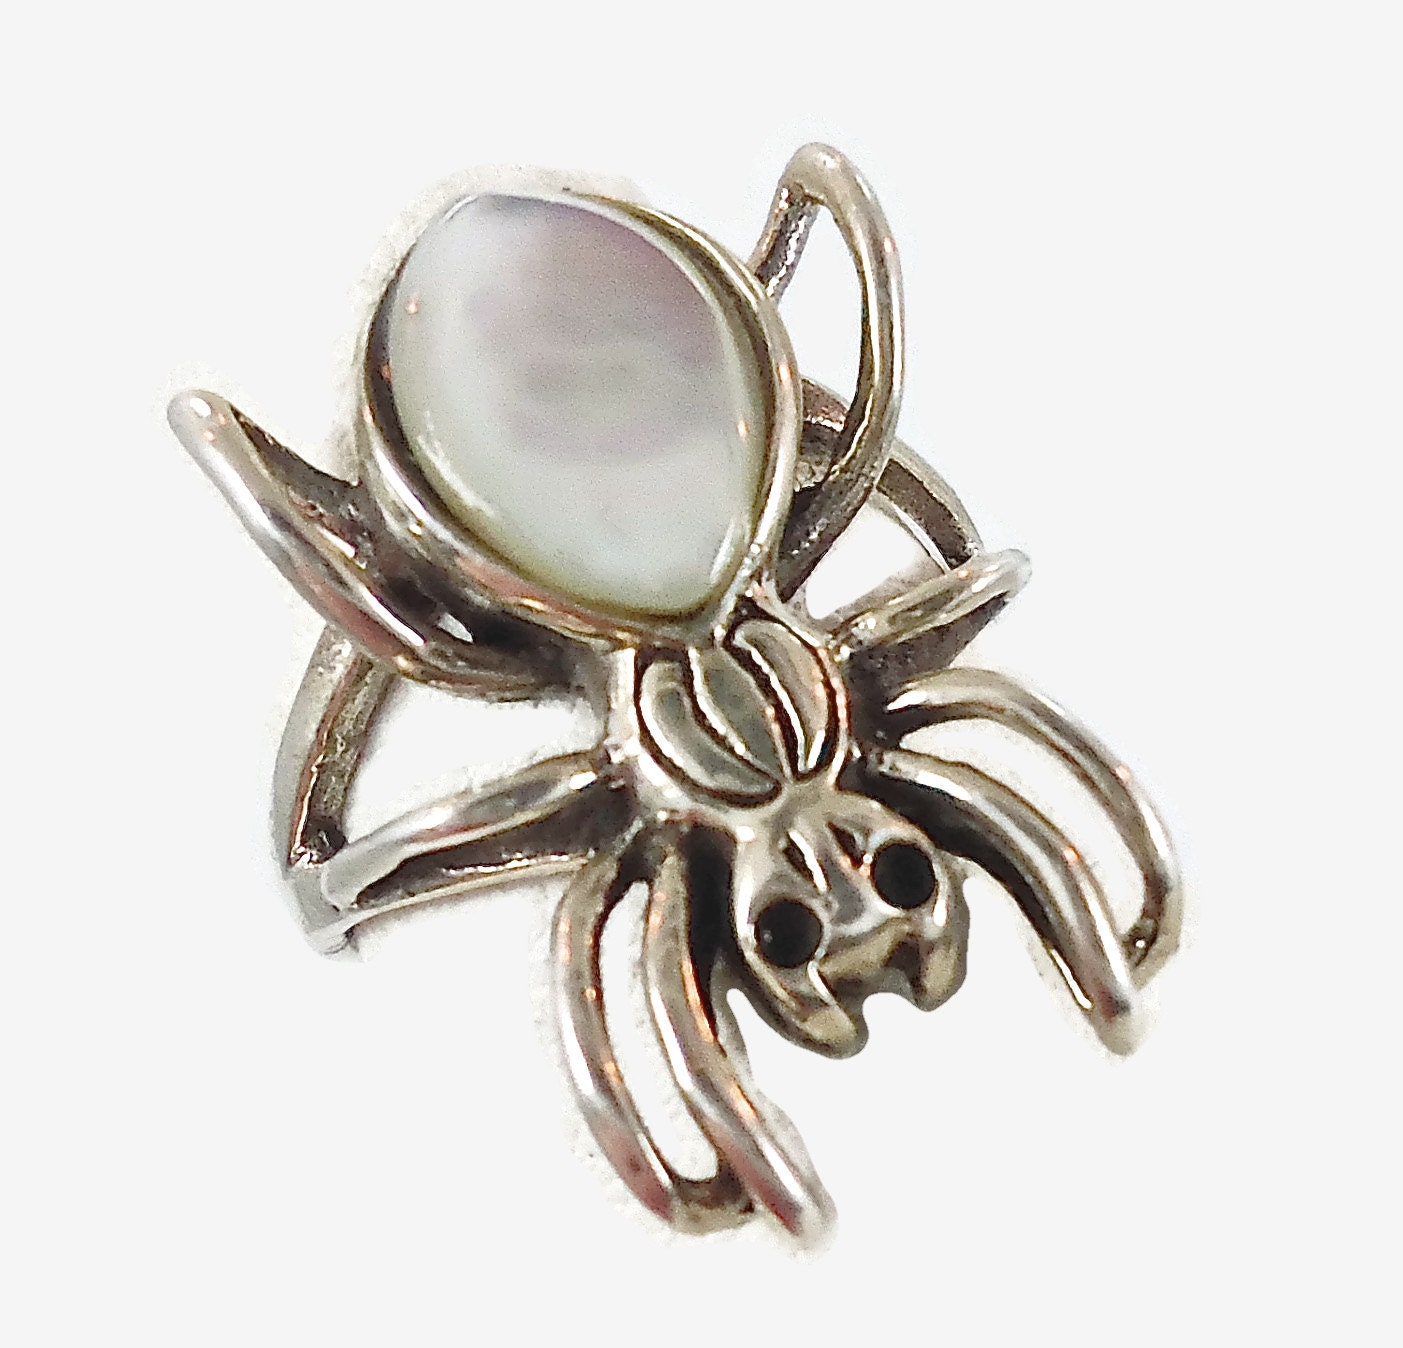 spider sterling silver ring vintage thailand by